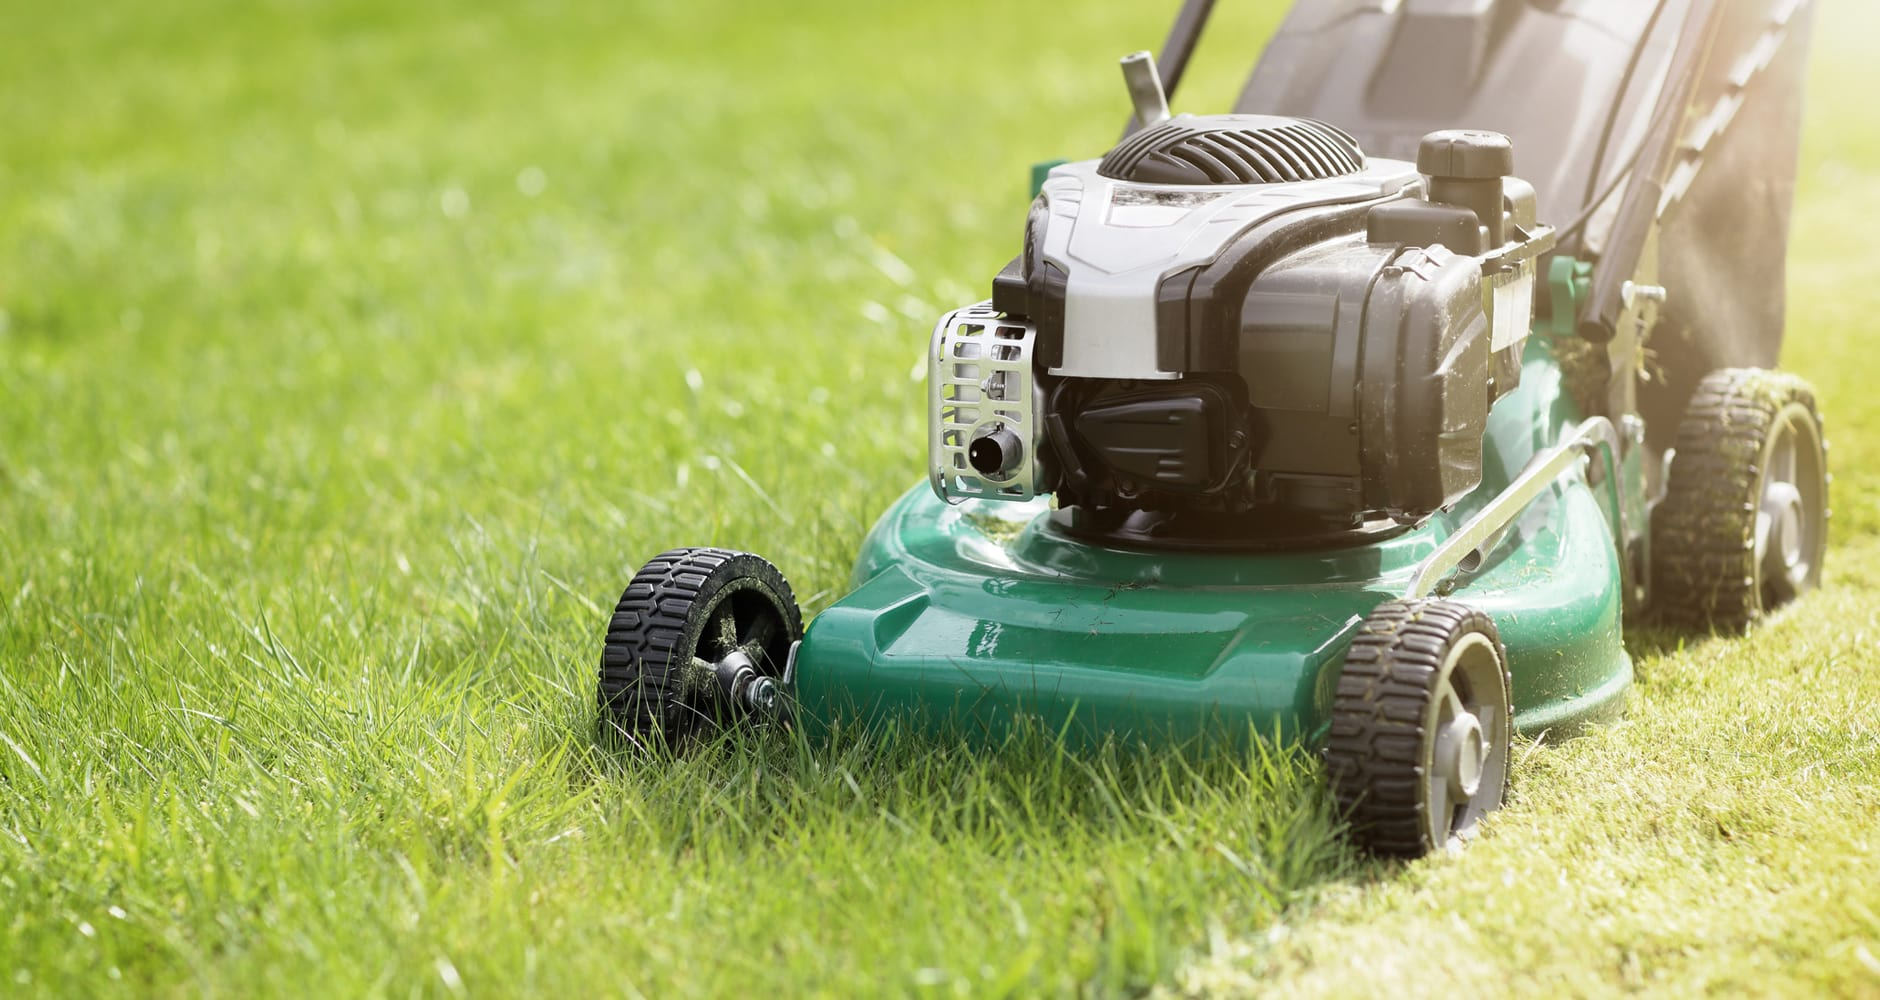 how to get rid of love bugs - mow your lawn